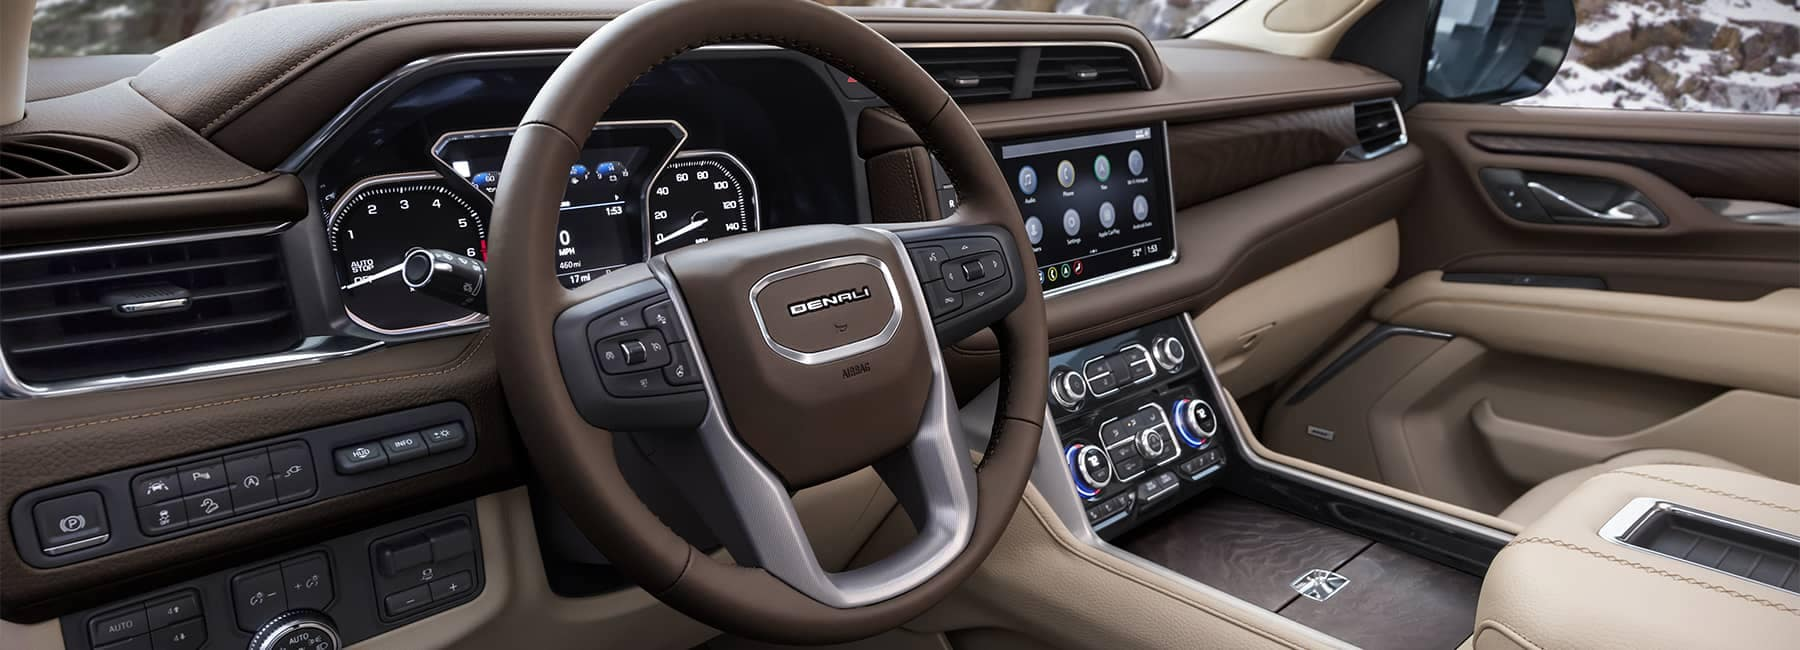 2021 GMC Denali Interior in brown and tan leather